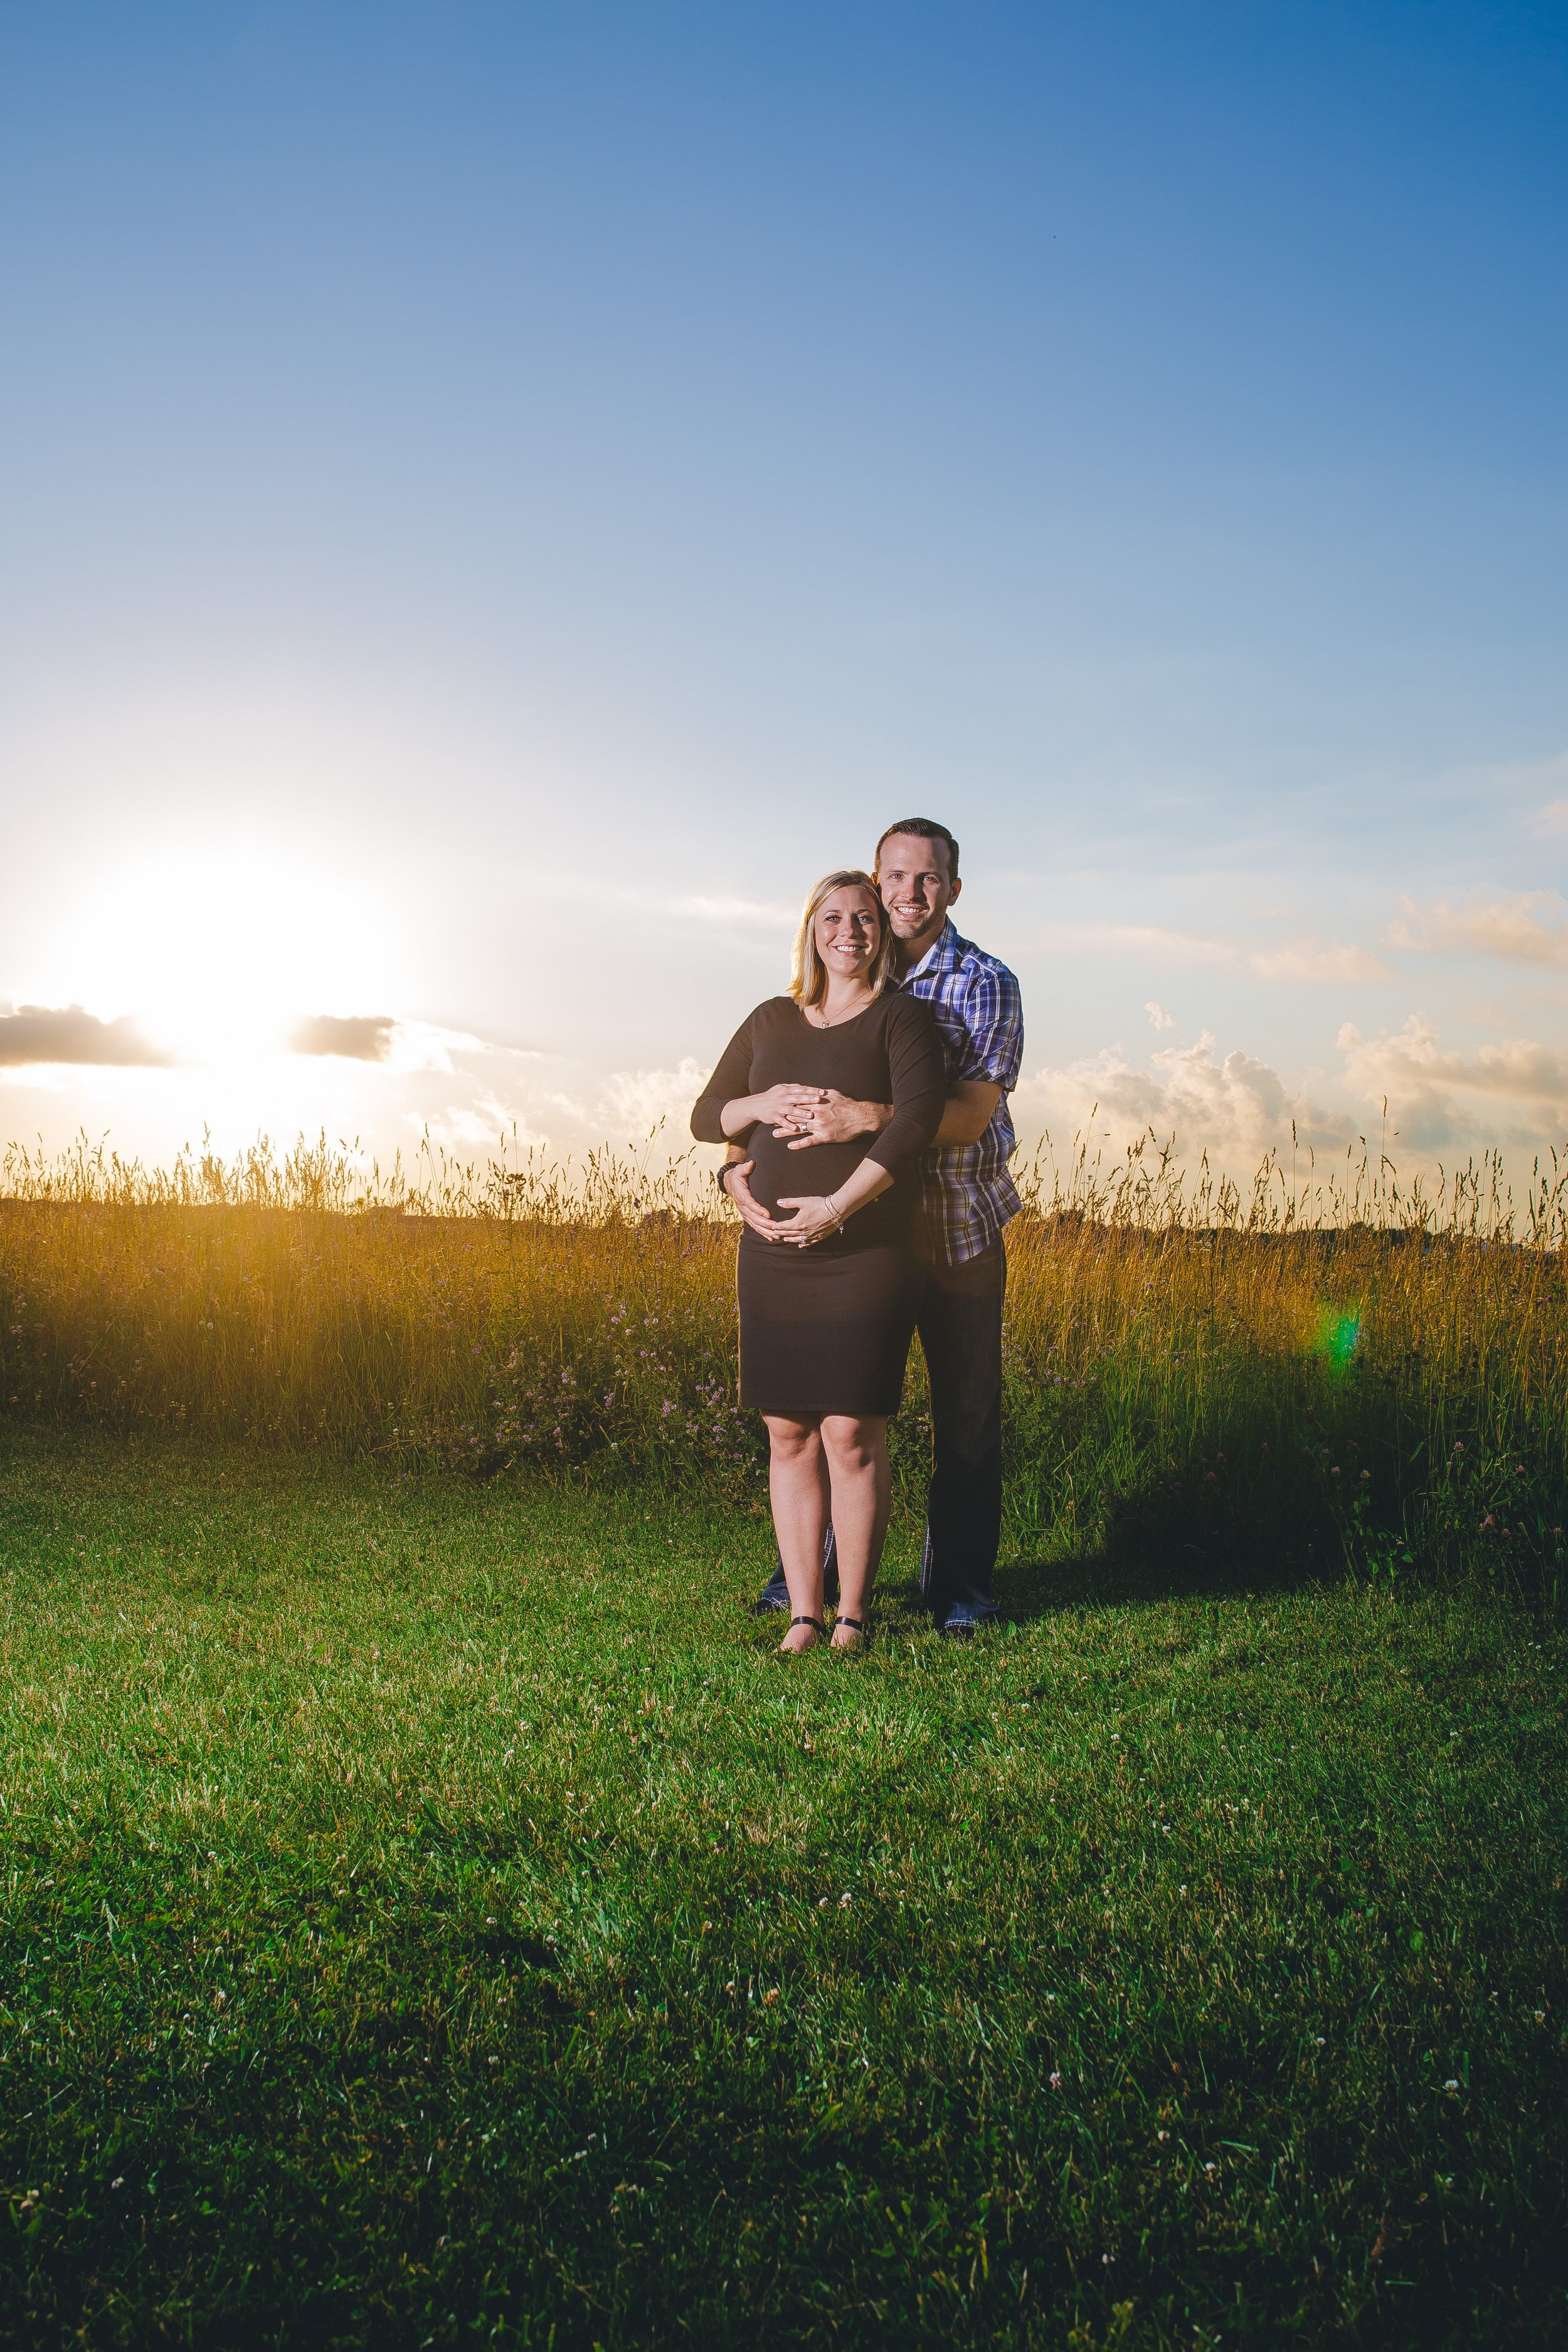 Andrea-Steve-James-Maternity-Shoot-46.jpg